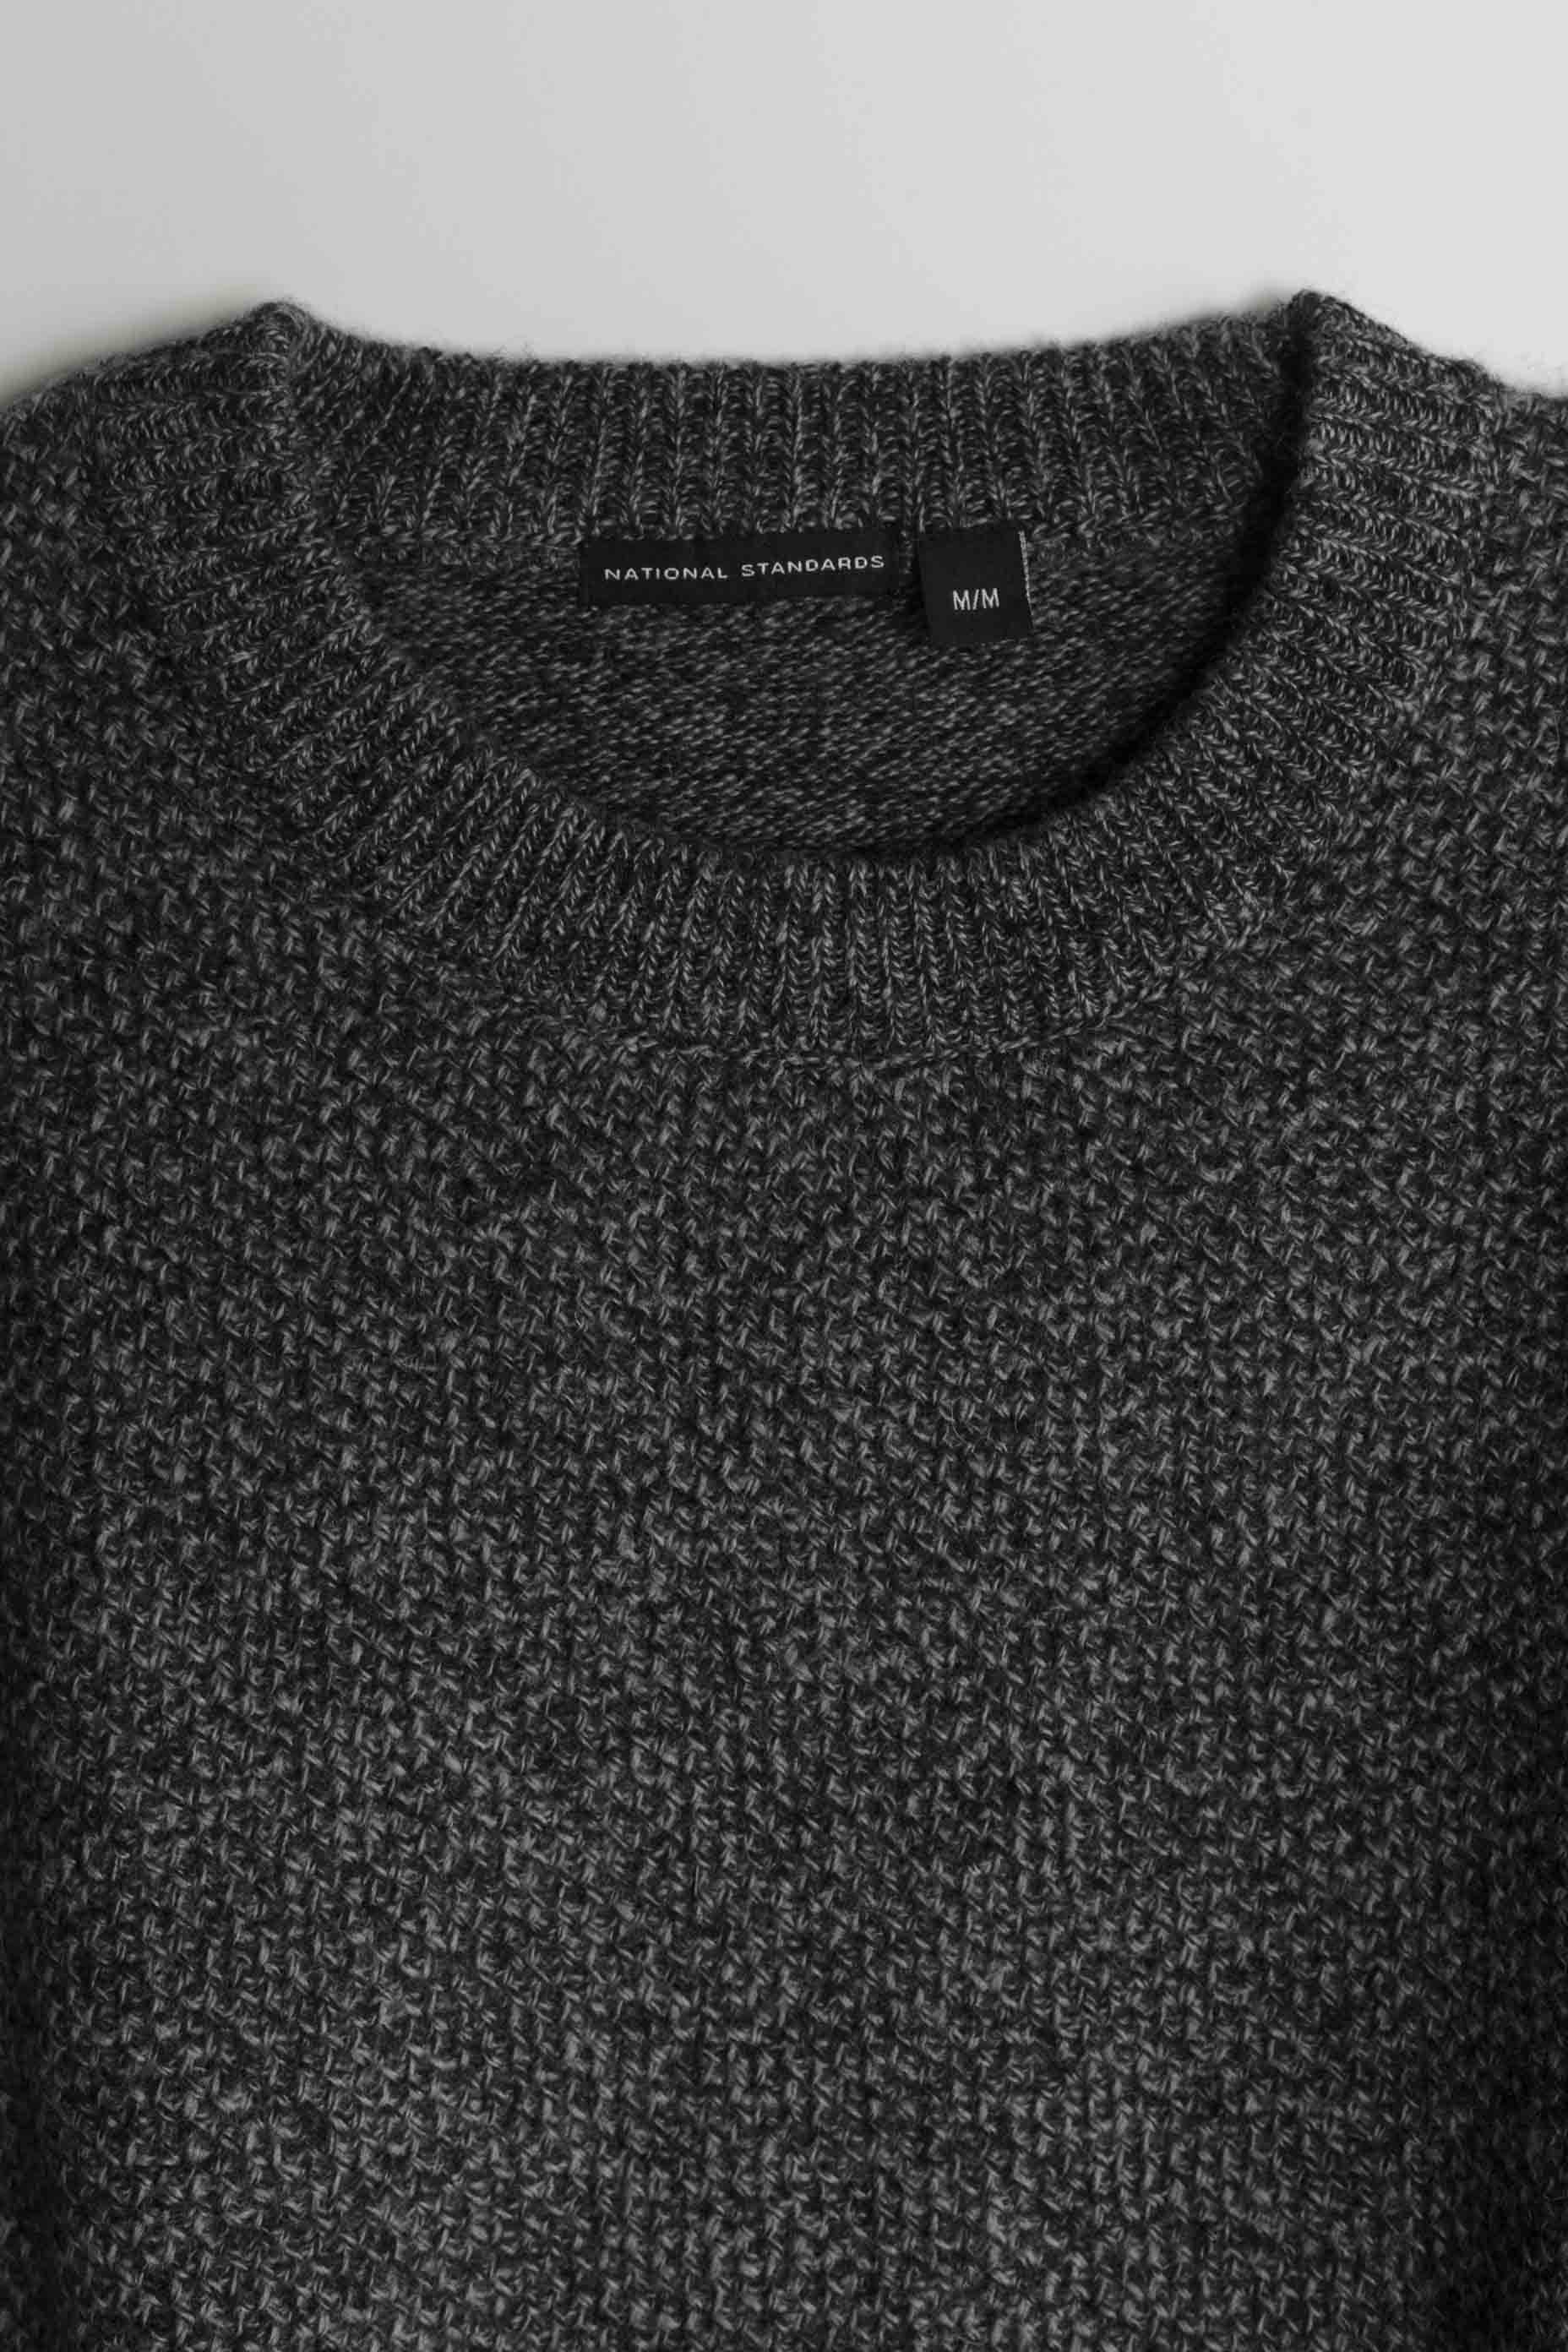 Lambswool Heavy Gauge Crew in Melange Black 02